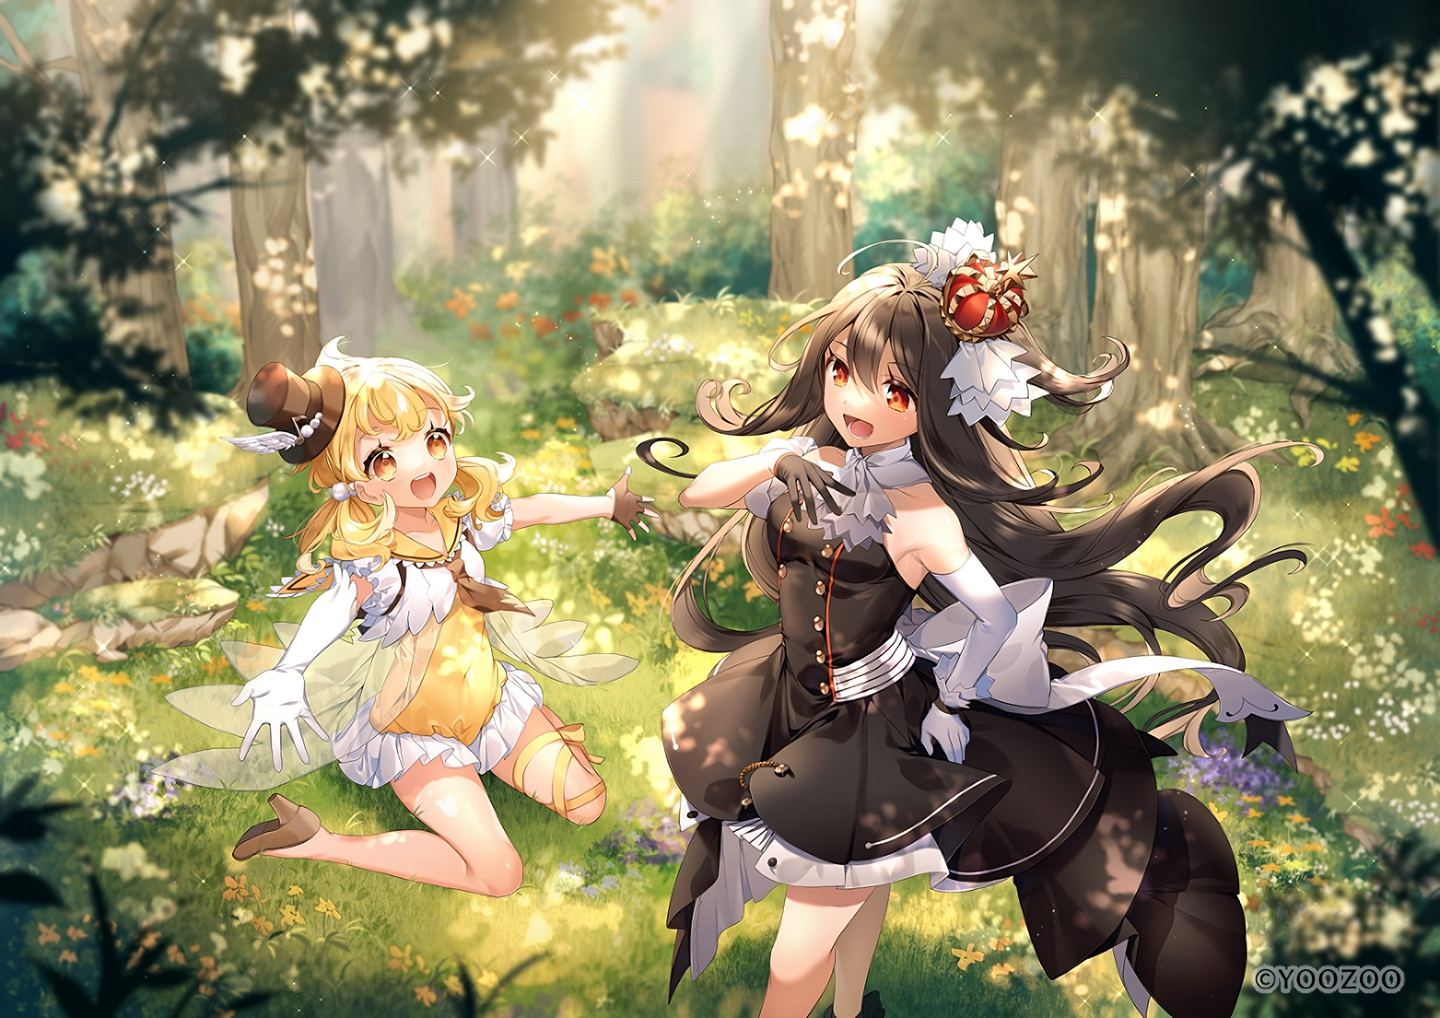 2girls dress elbow_gloves flowers forest gloves grass loli long_hair red:_pride_of_eden sumomo_kaze tagme_(character) tree twintails waifu2x